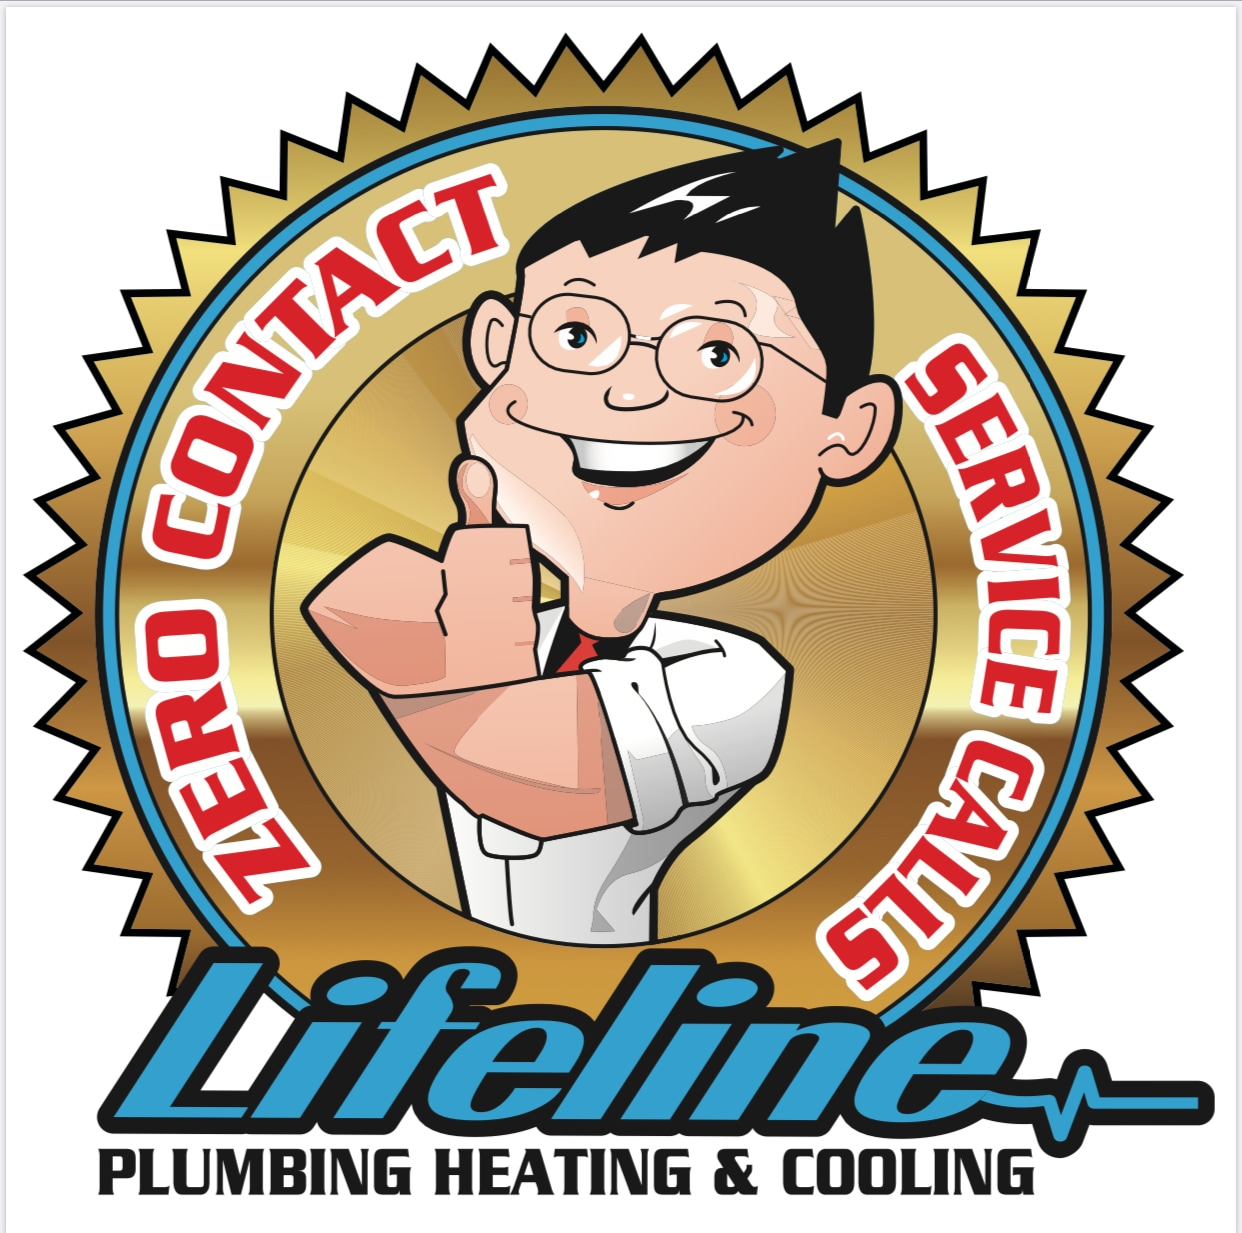 Lifeline Plumbing Heating & Cooling logo